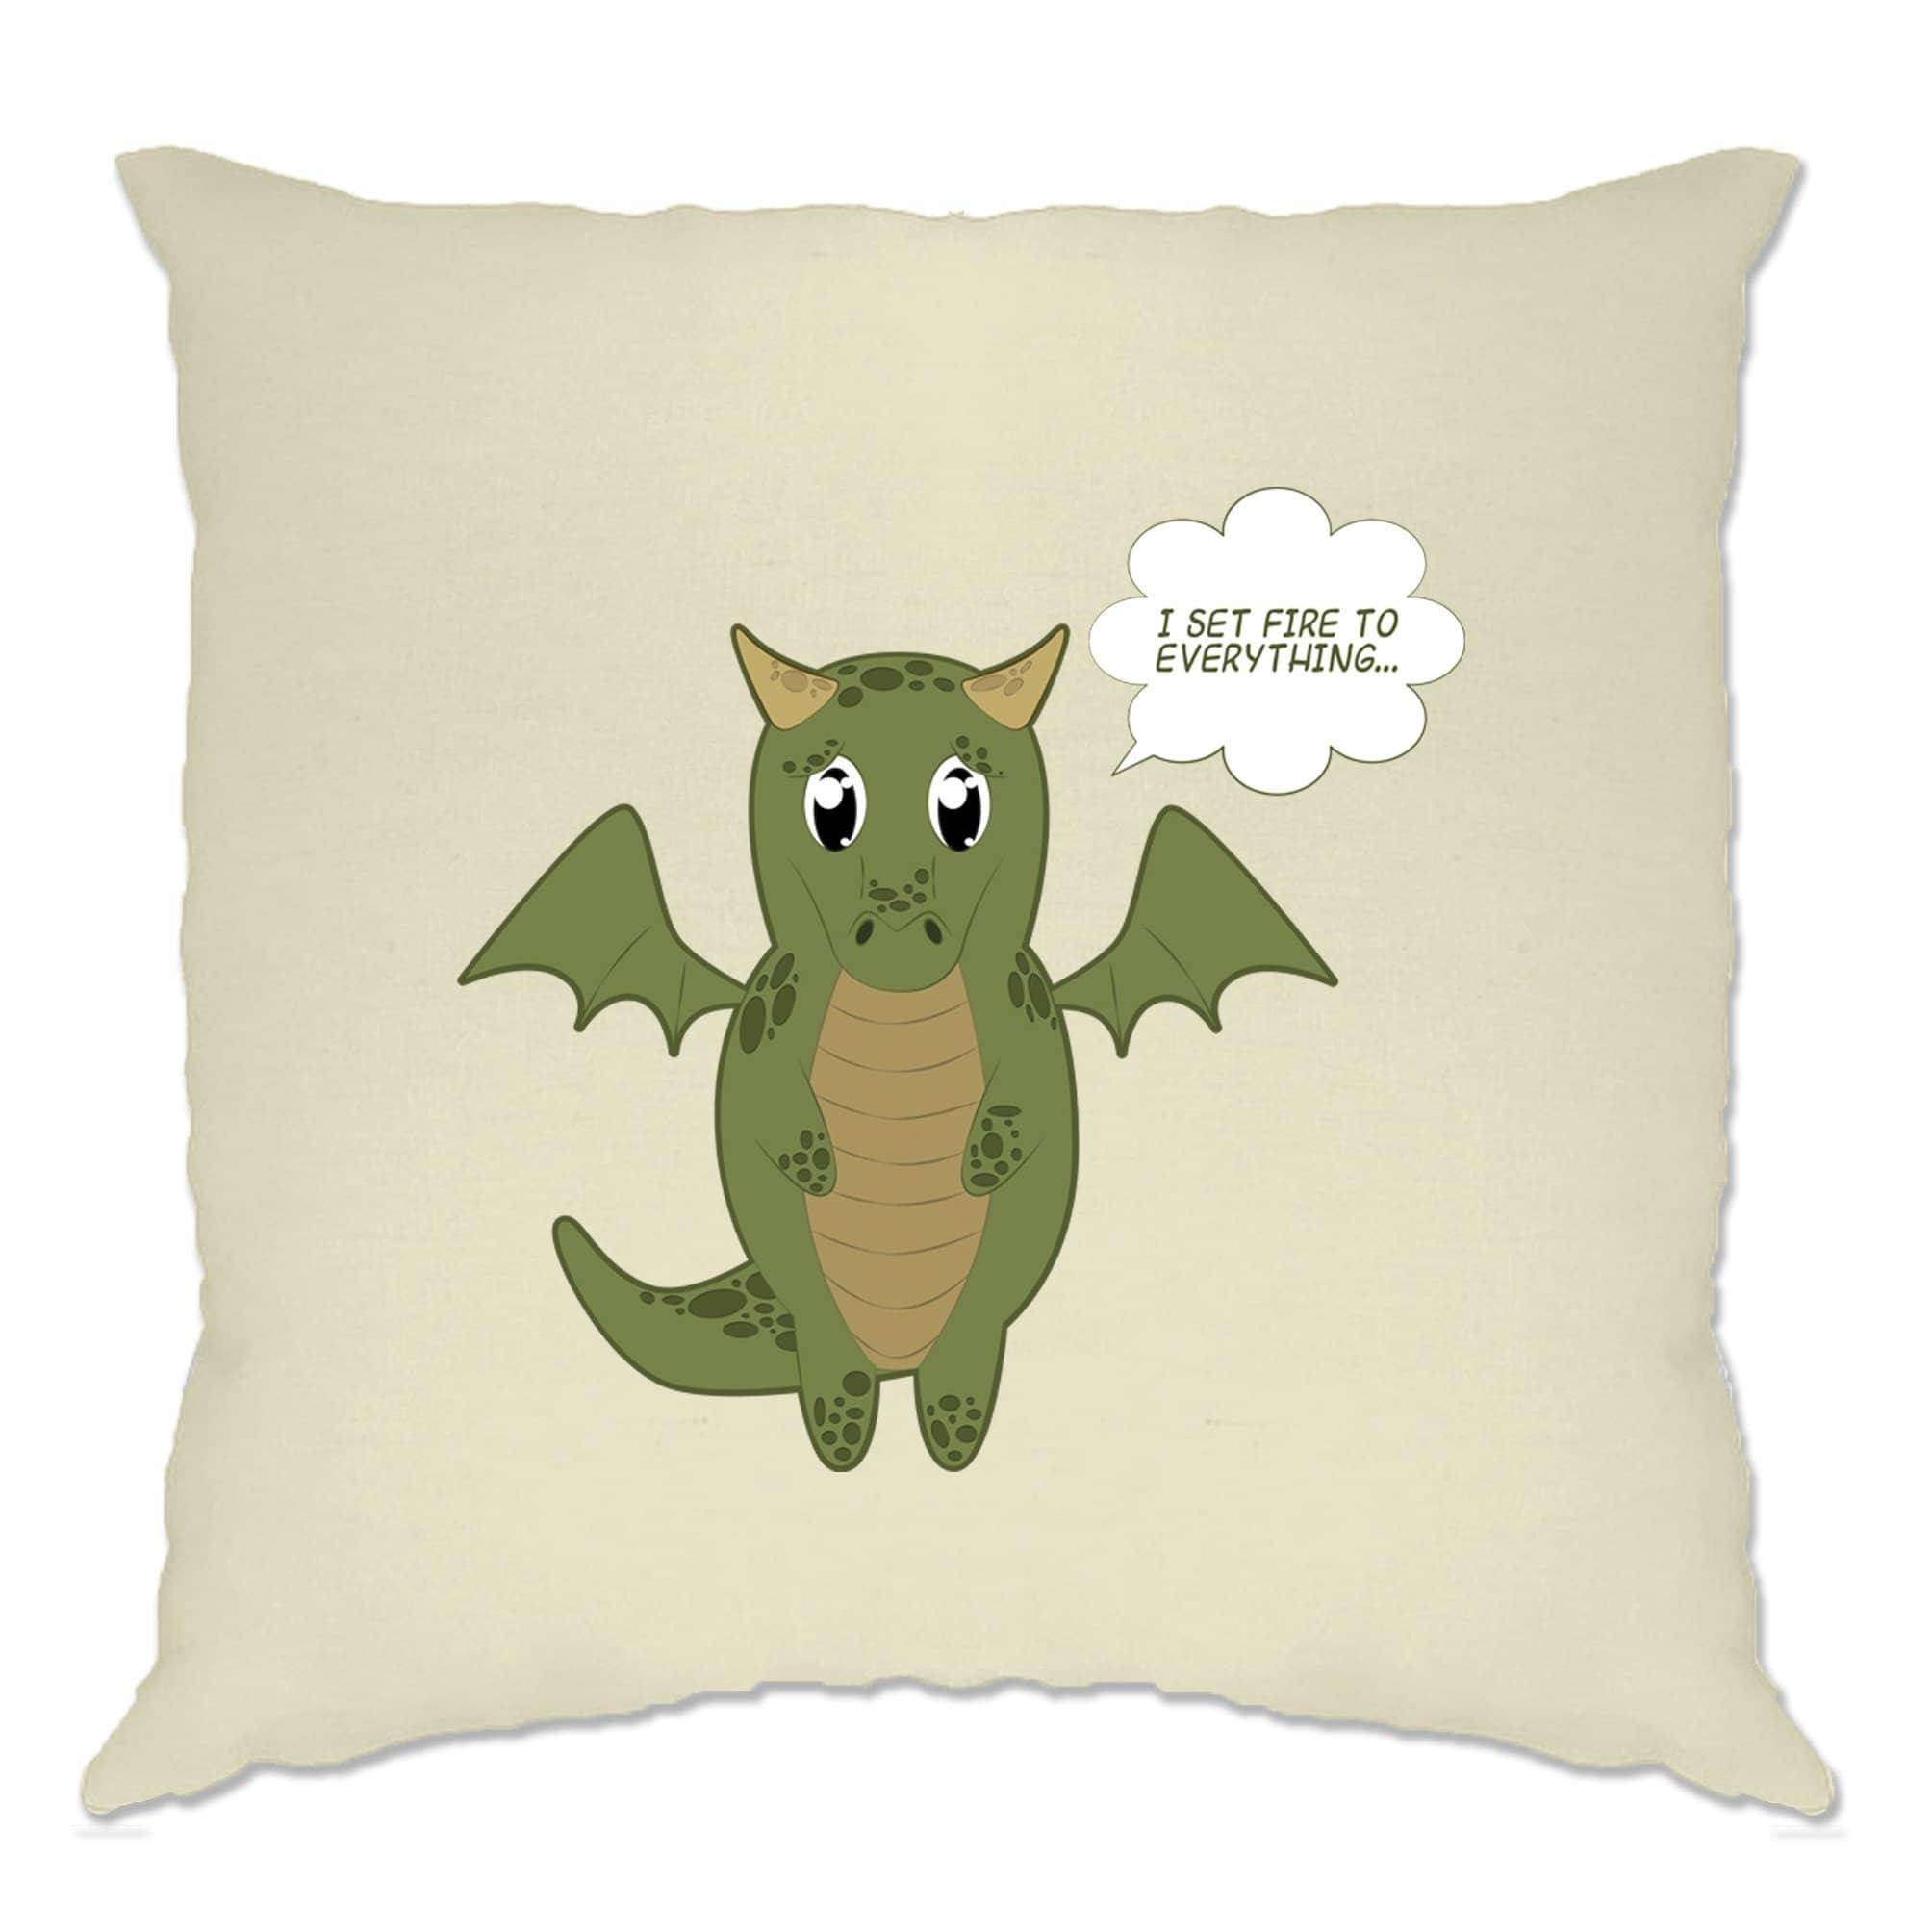 Cute Dragon Cushion Cover I Set Fire To Everything Joke